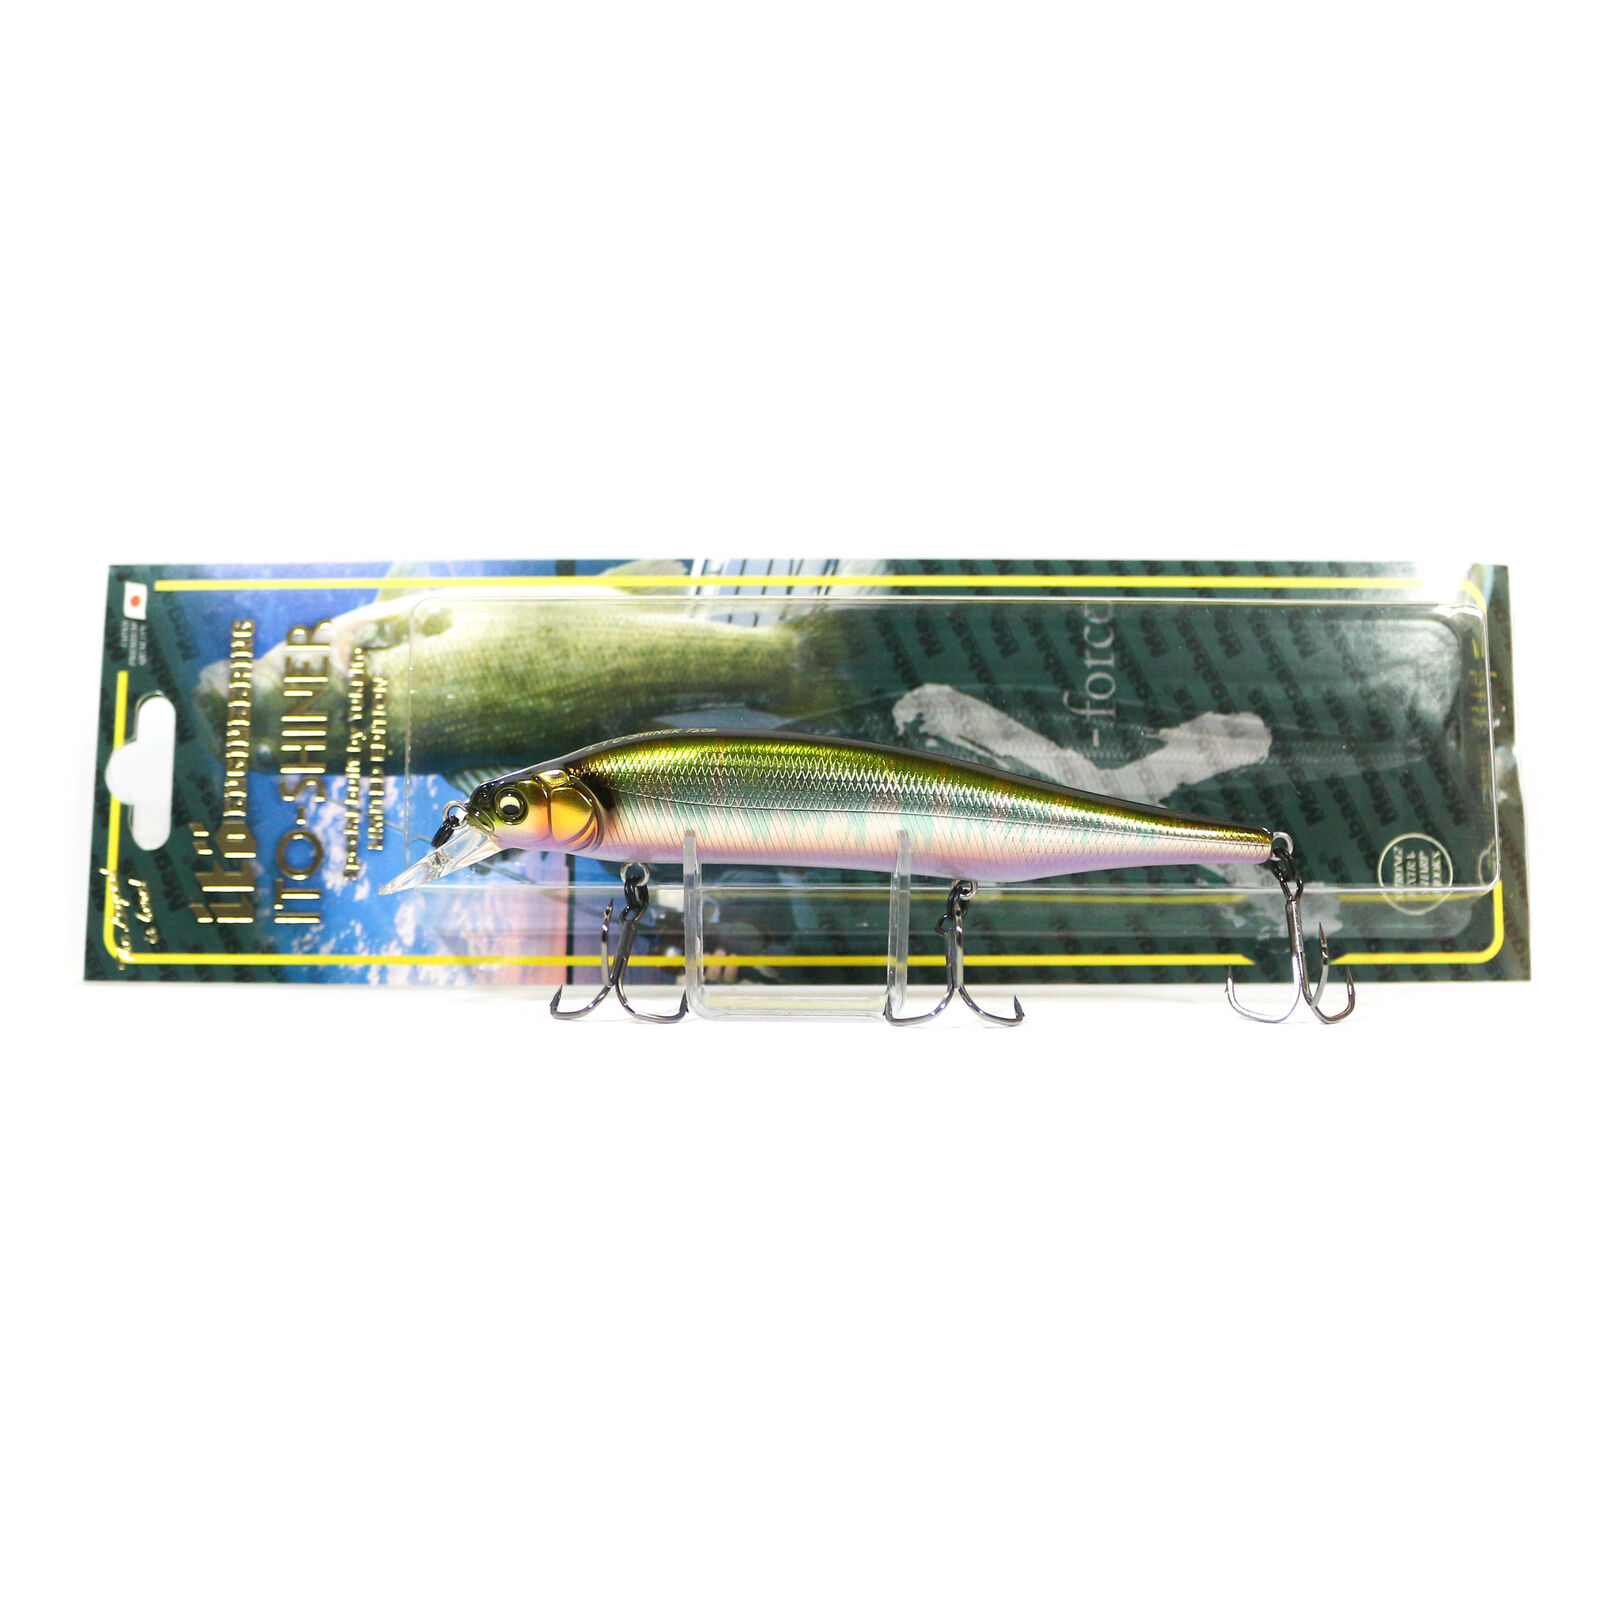 Megabass 342530 Lure Ito Shiner Wagin Oikawa M for sale online